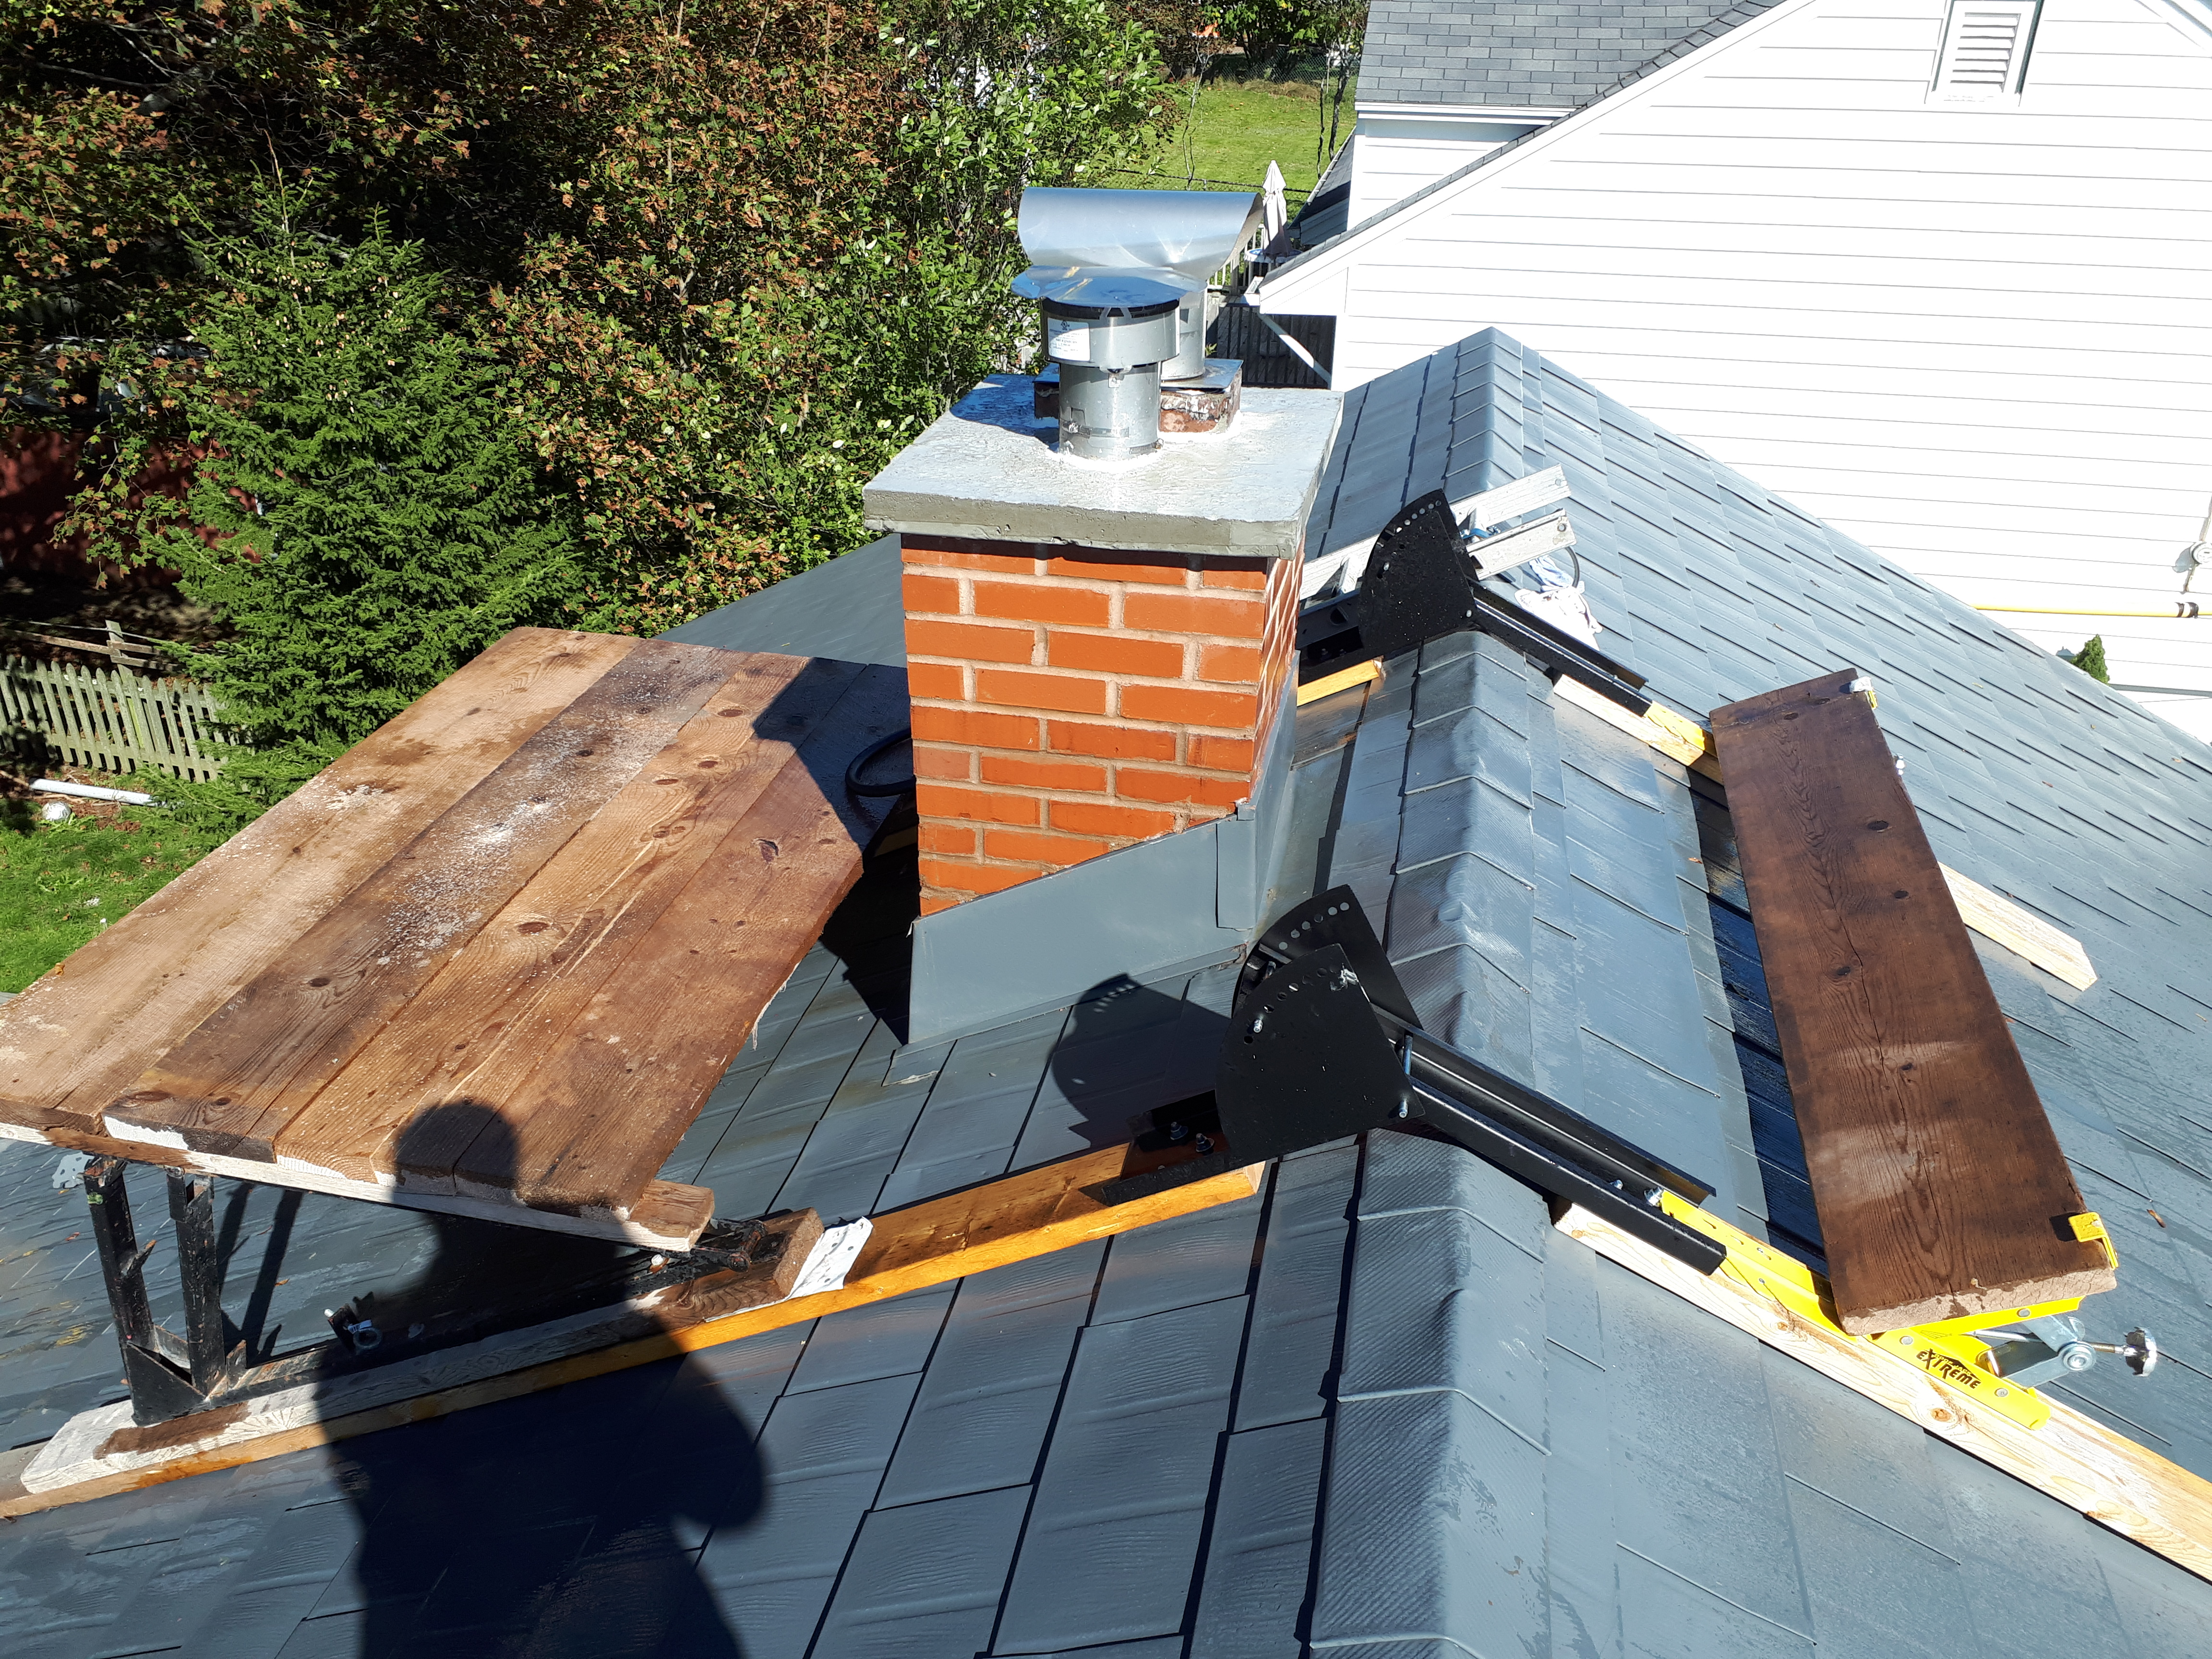 image of chimney construction-repair services completed in Halifax-Dartmouth Regional Municipality, NS by Pro Chimney Services based in Halifax, NS servicing all of the Halifax-Dartmouth Regional Municipality,Bedford, Sackville, Mount Uniacke, Windsor, Hantsport , Wolfville, Kentville, Chester, Mahone Bay, Lunenburg, Bridgewater, Liverpool, Fall River, Wellington, Enfield, Elmsdale, Brookfield, Truro, Musquodoboit Harbour & surrounding areas.